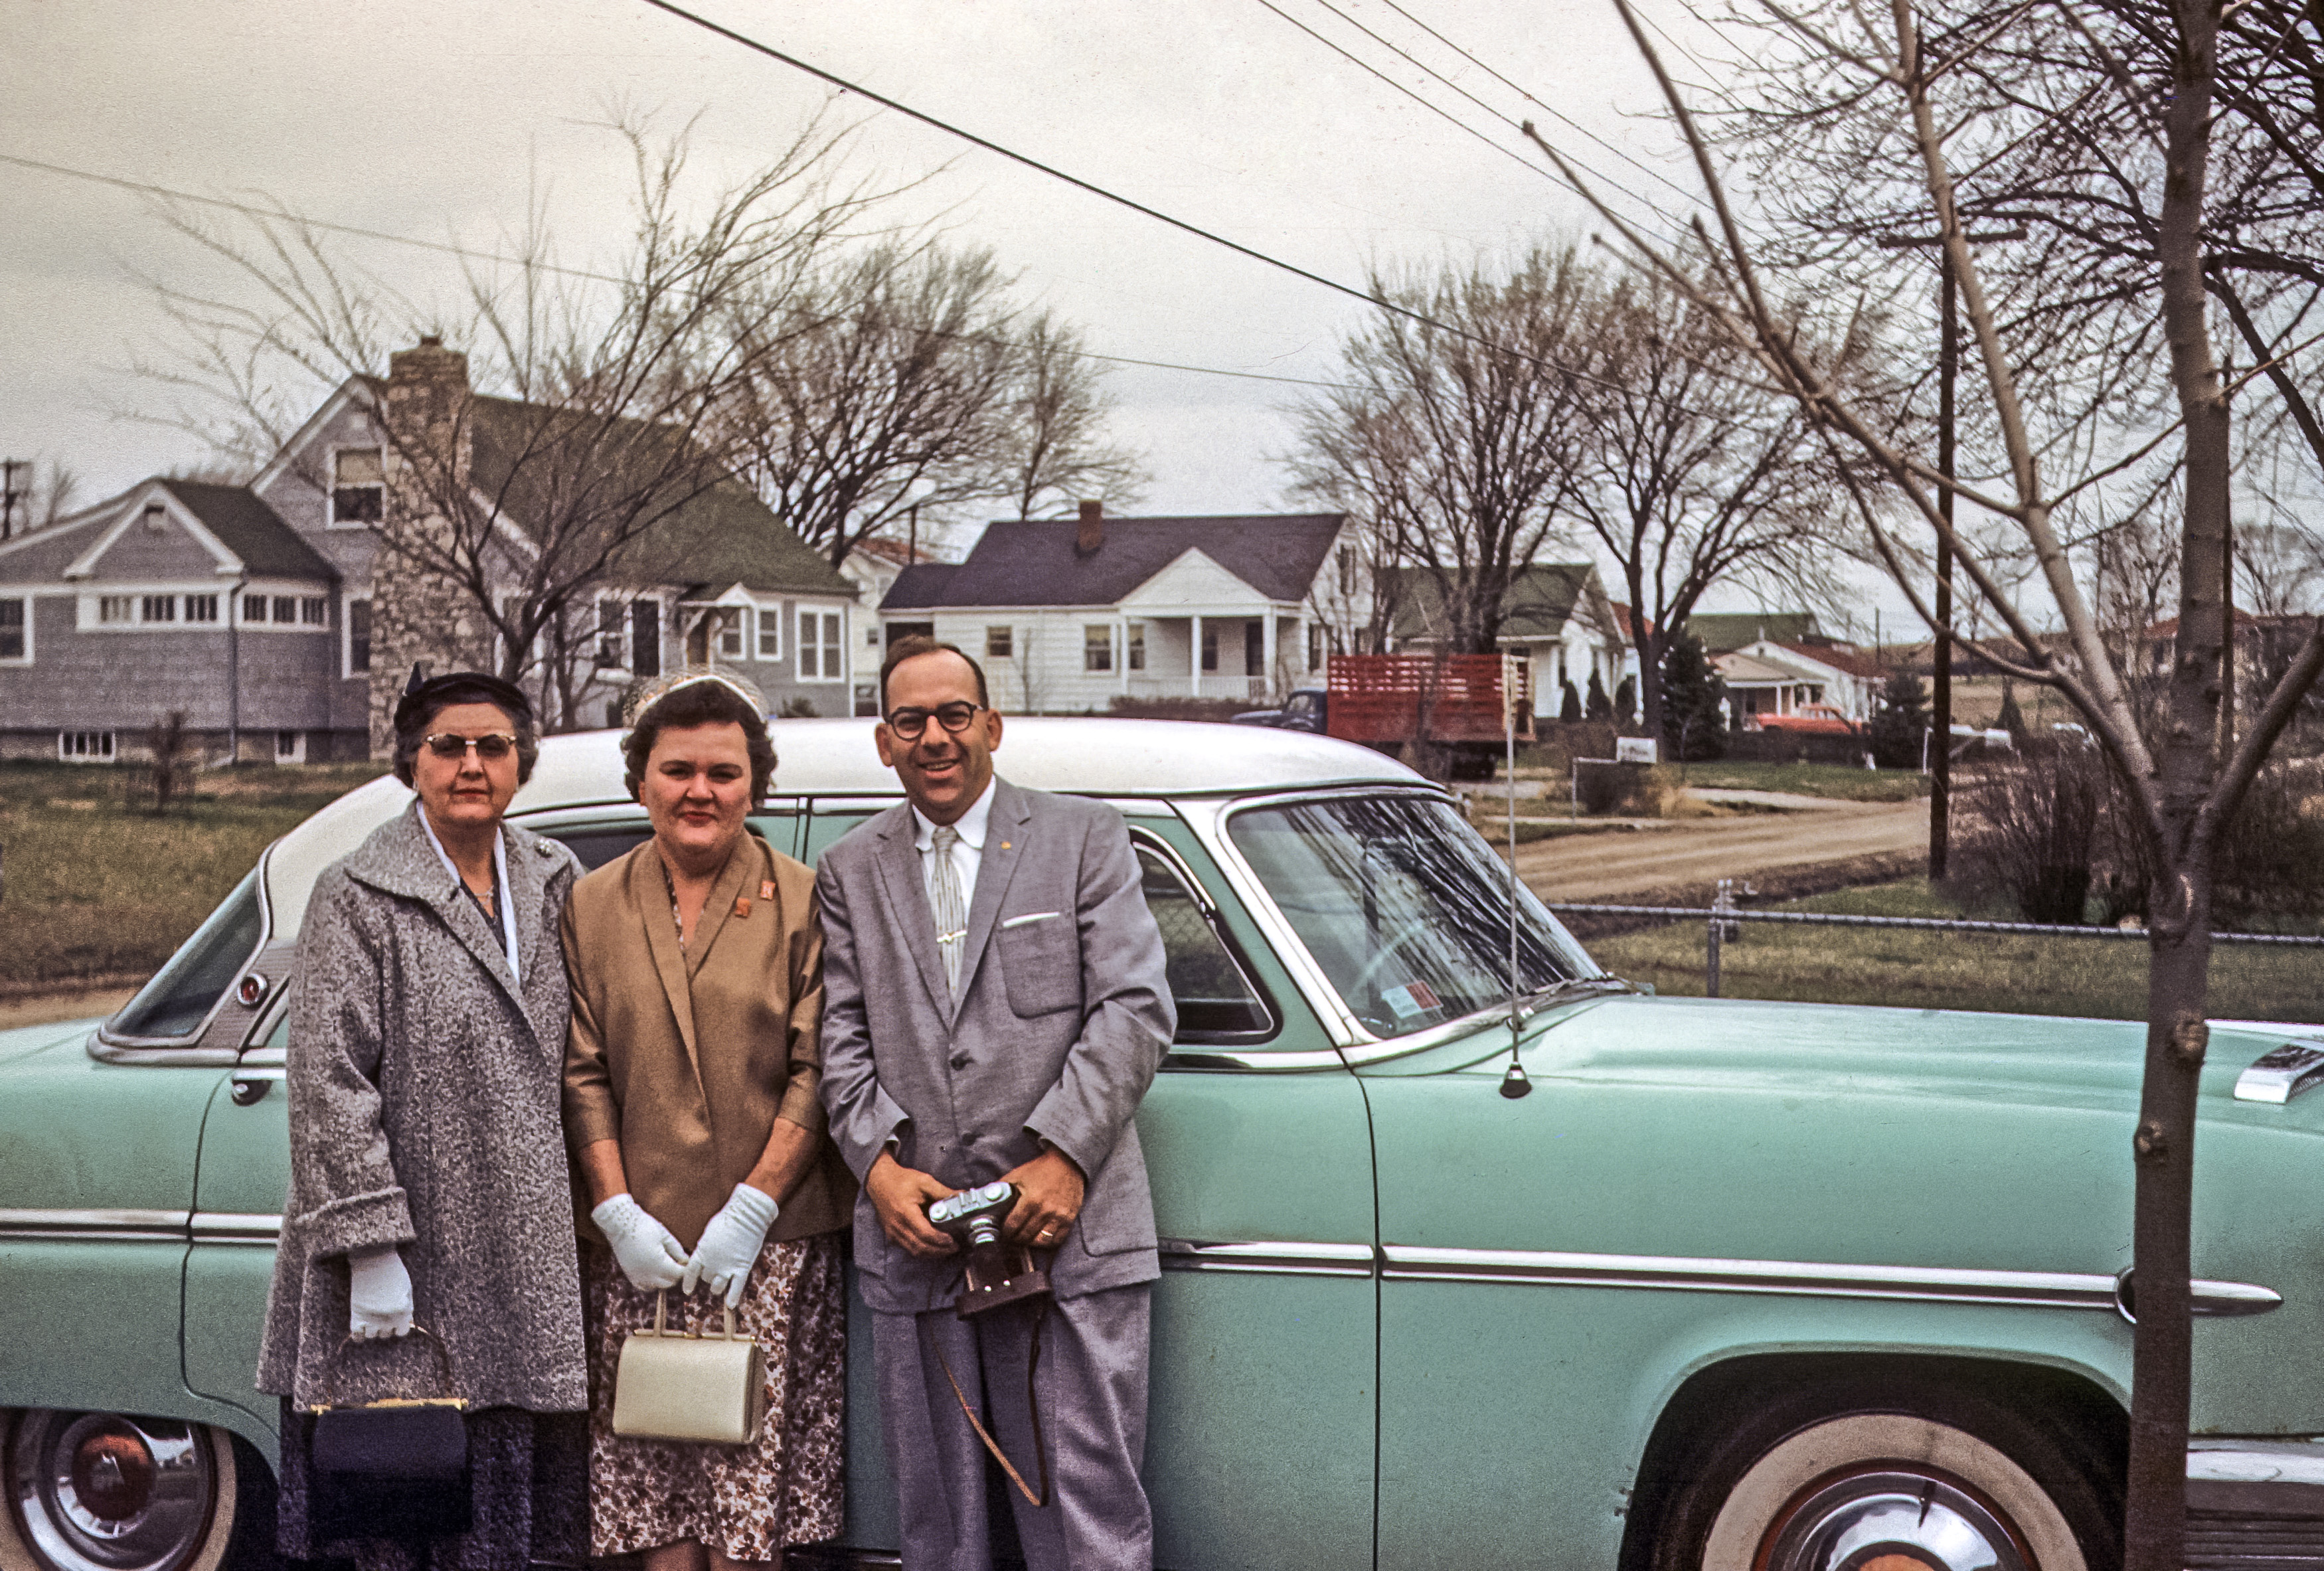 Vintage photo of a family standing near a car in the 1950s